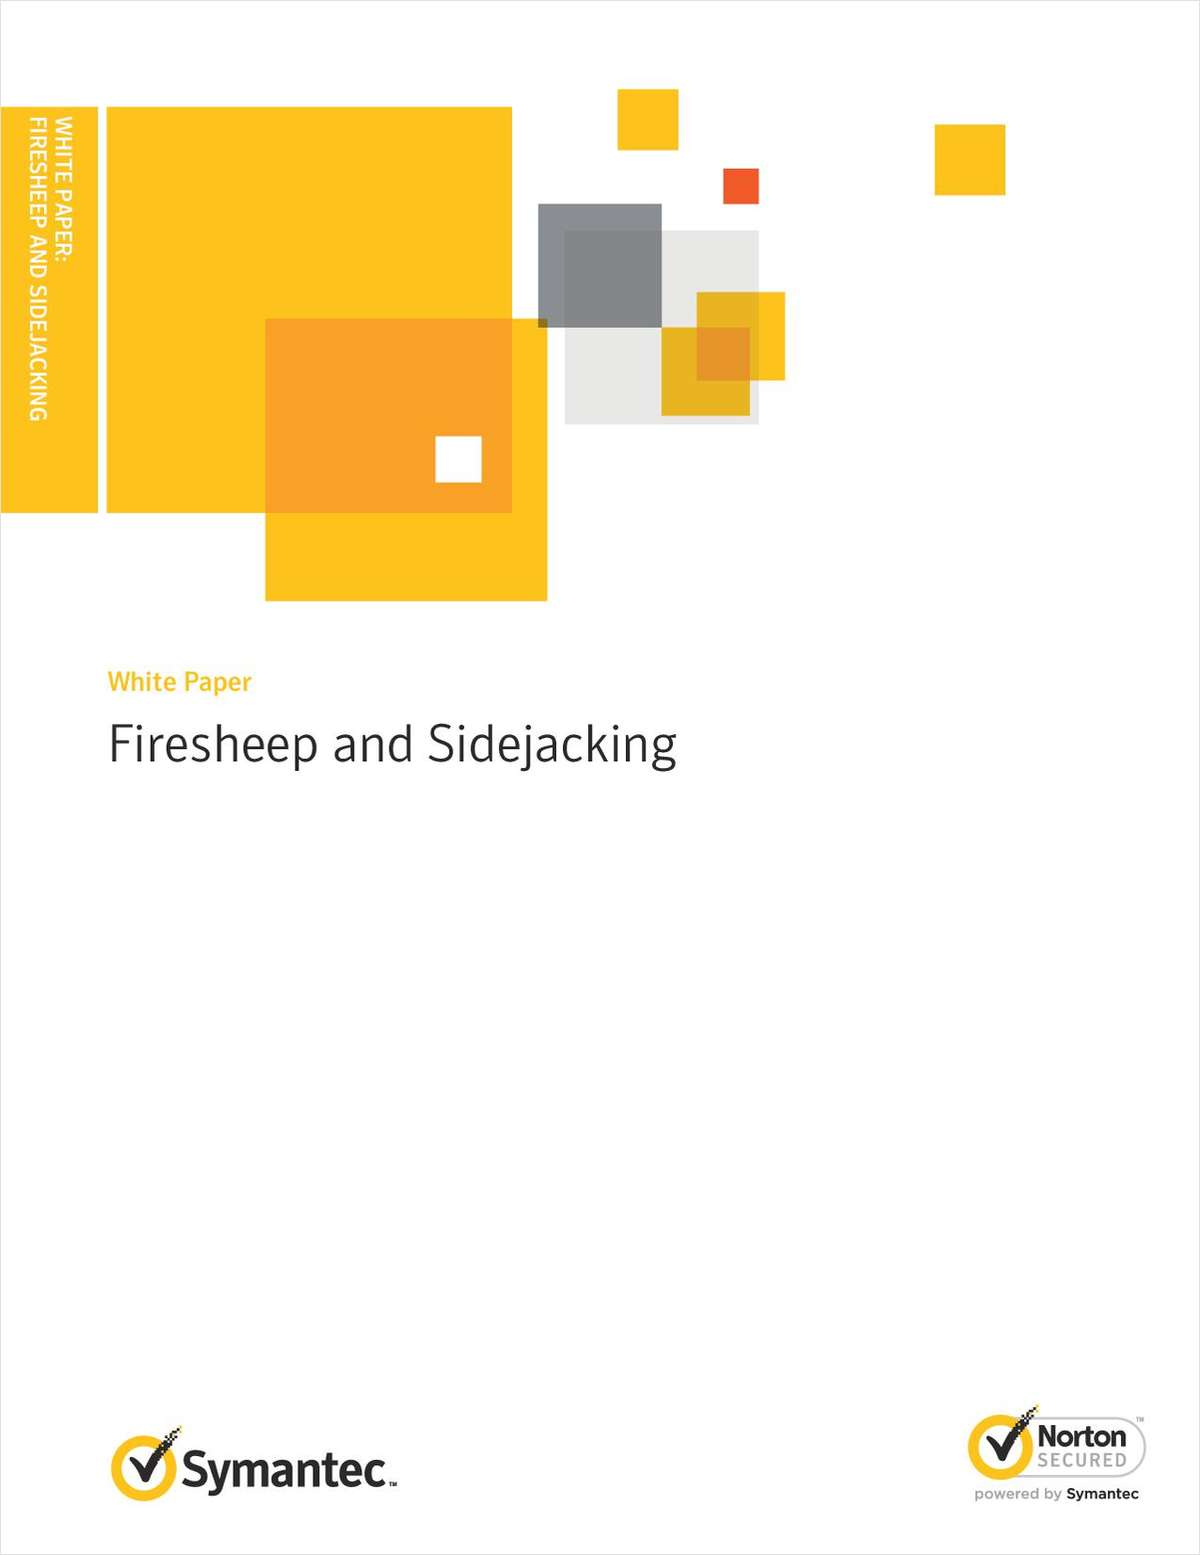 Protecting Users From Firesheep and Sidejacking Attacks with SSL